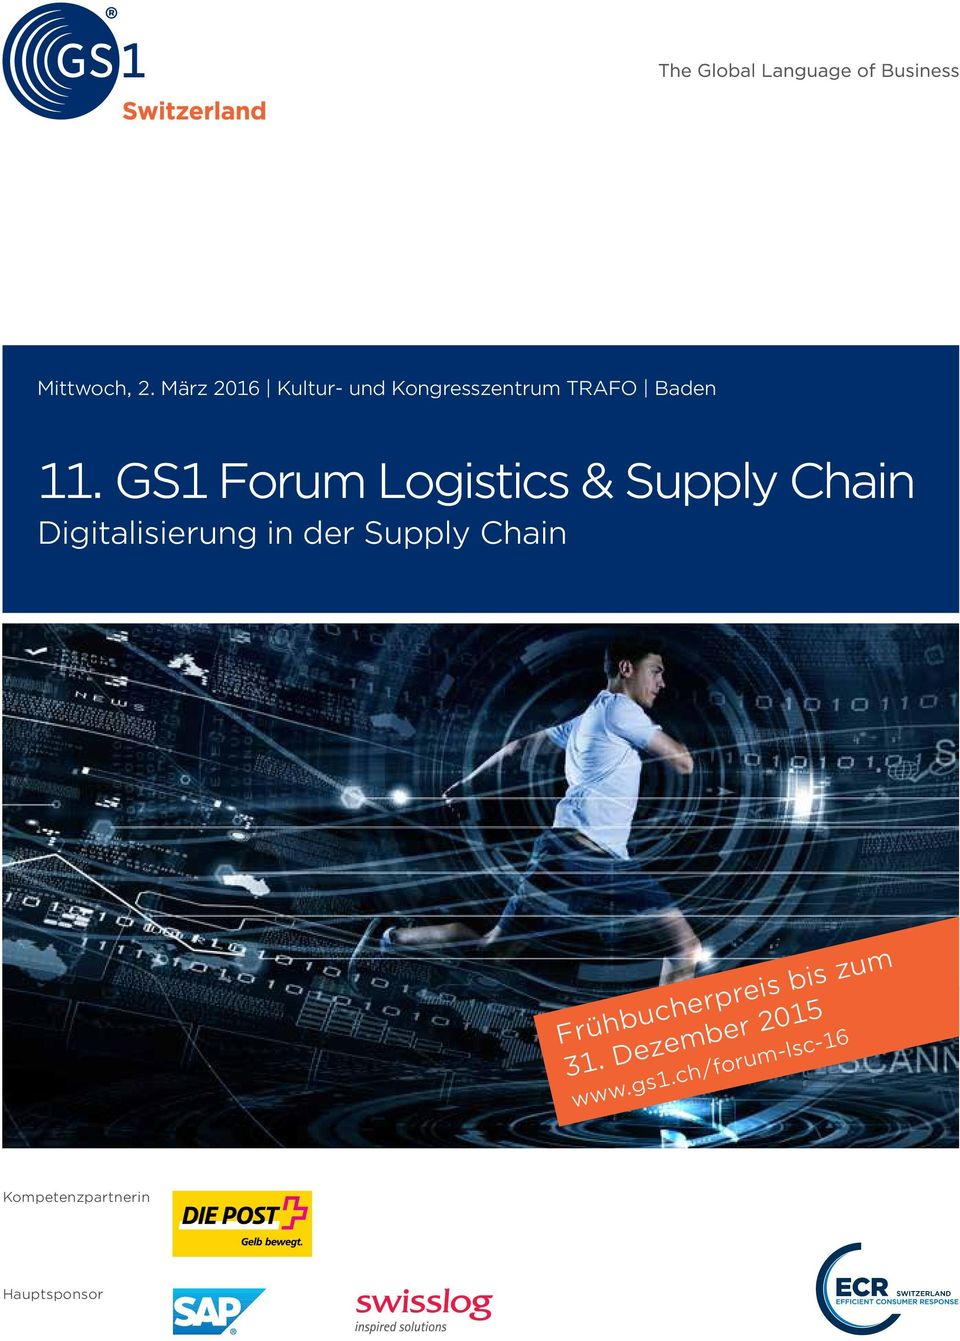 GS1 Forum Logistics & Supply Chain Digitalisierung in der